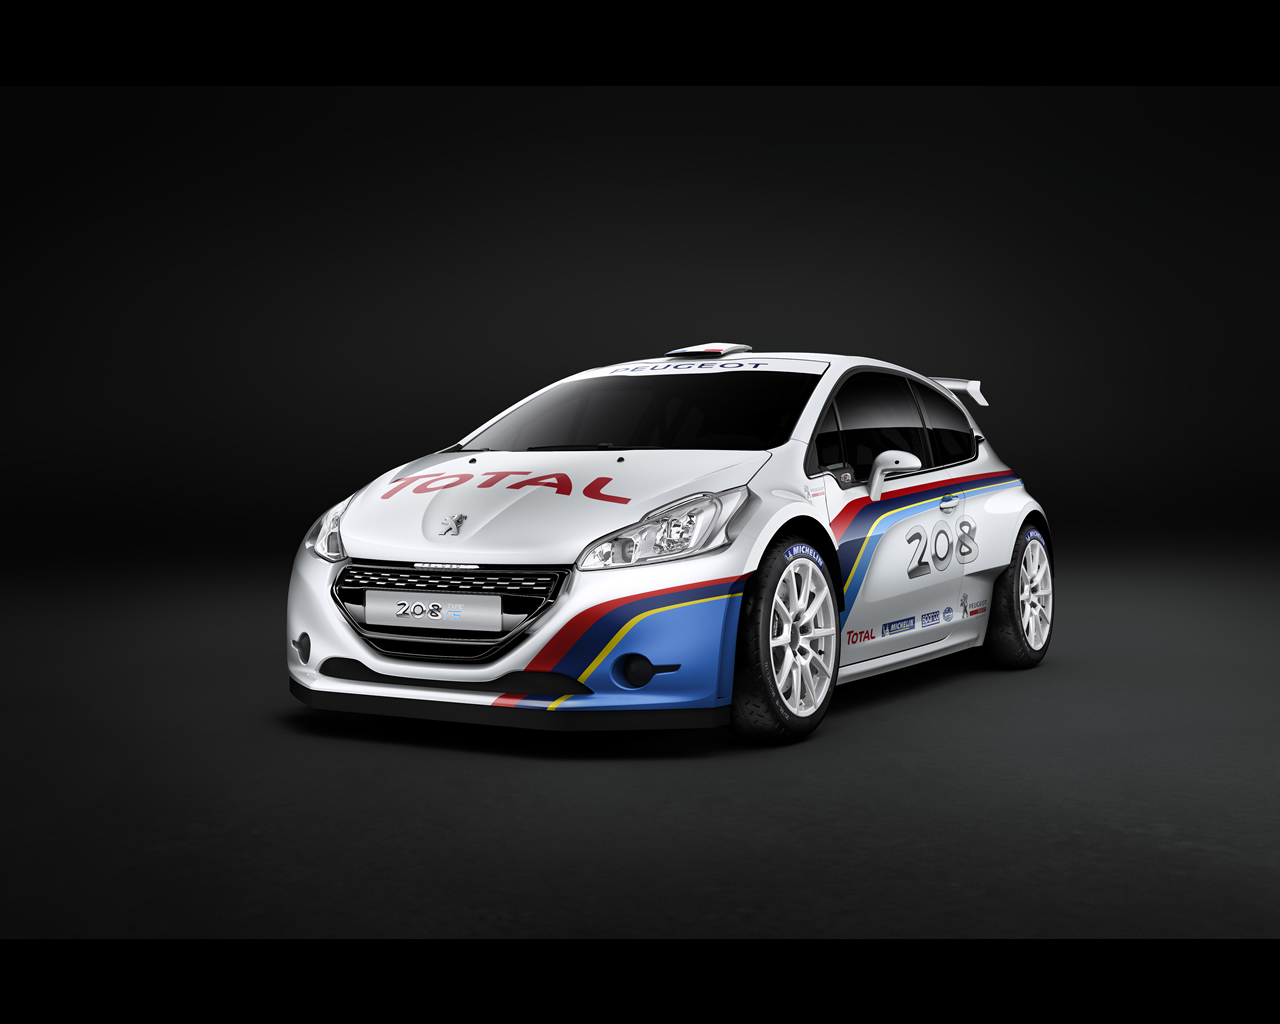 peugeot 208 type r5 rally car for 2013. Black Bedroom Furniture Sets. Home Design Ideas